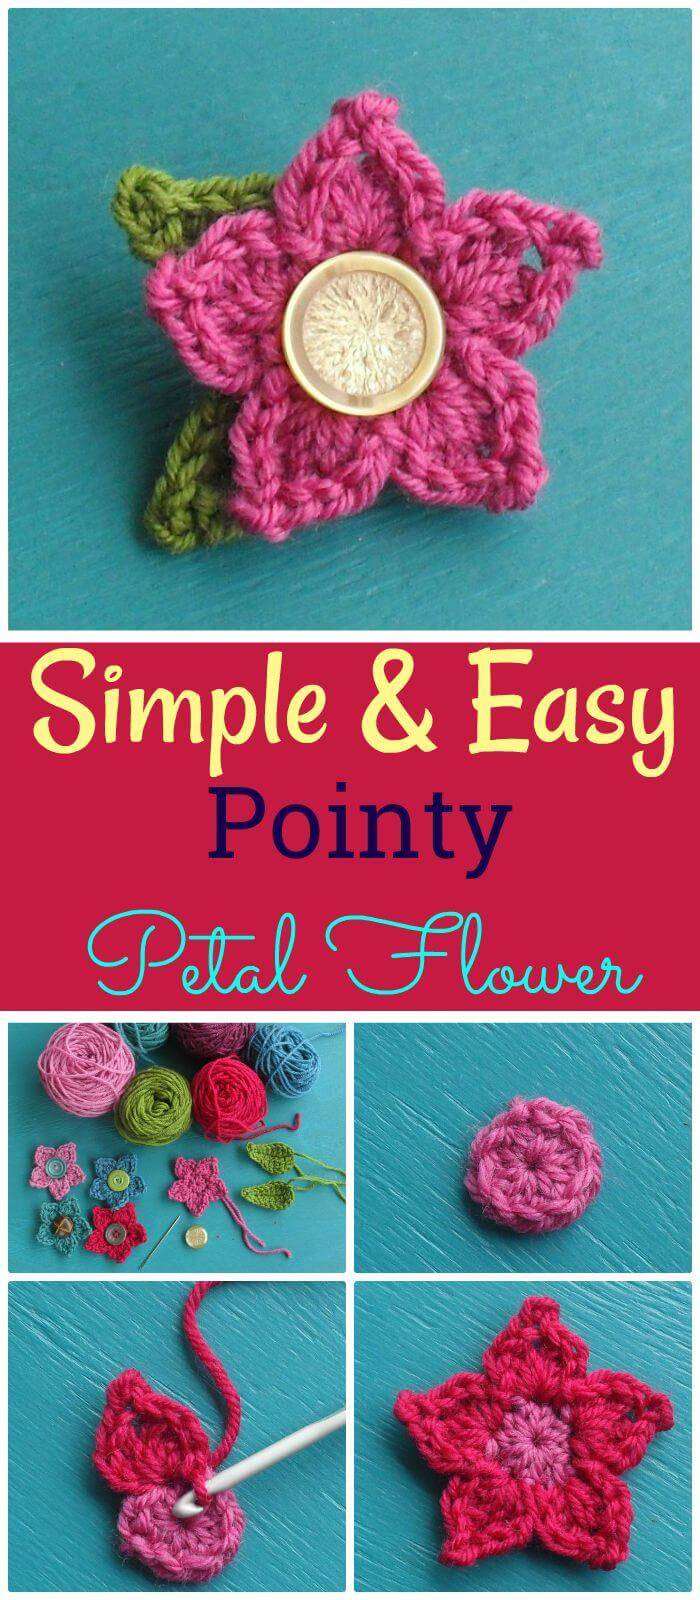 12 amazing free crochet 3d flower patterns to love and make.